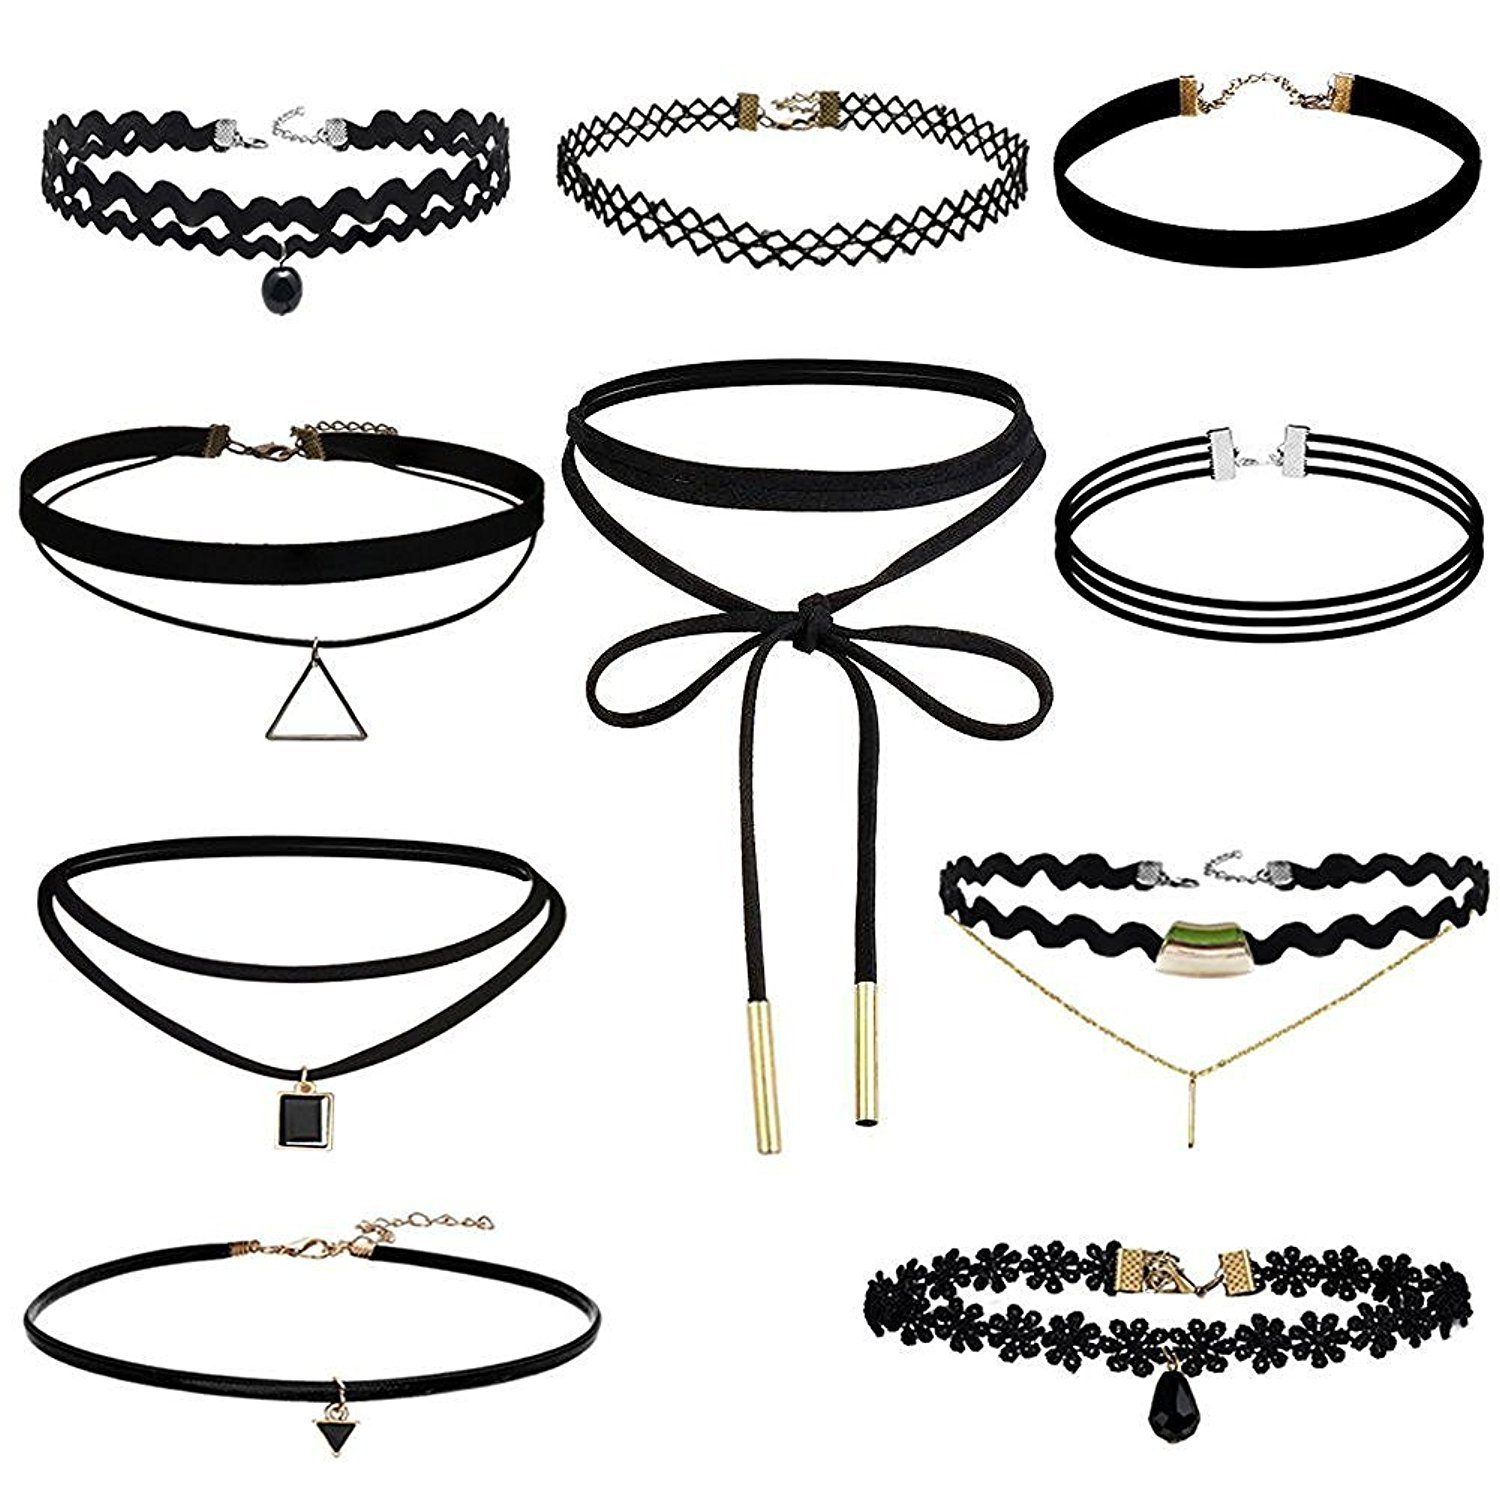 Eschone 10pcs Choker Necklace for Girls Lace Choker Gothic Little Princess Fashion Jewelry, Black